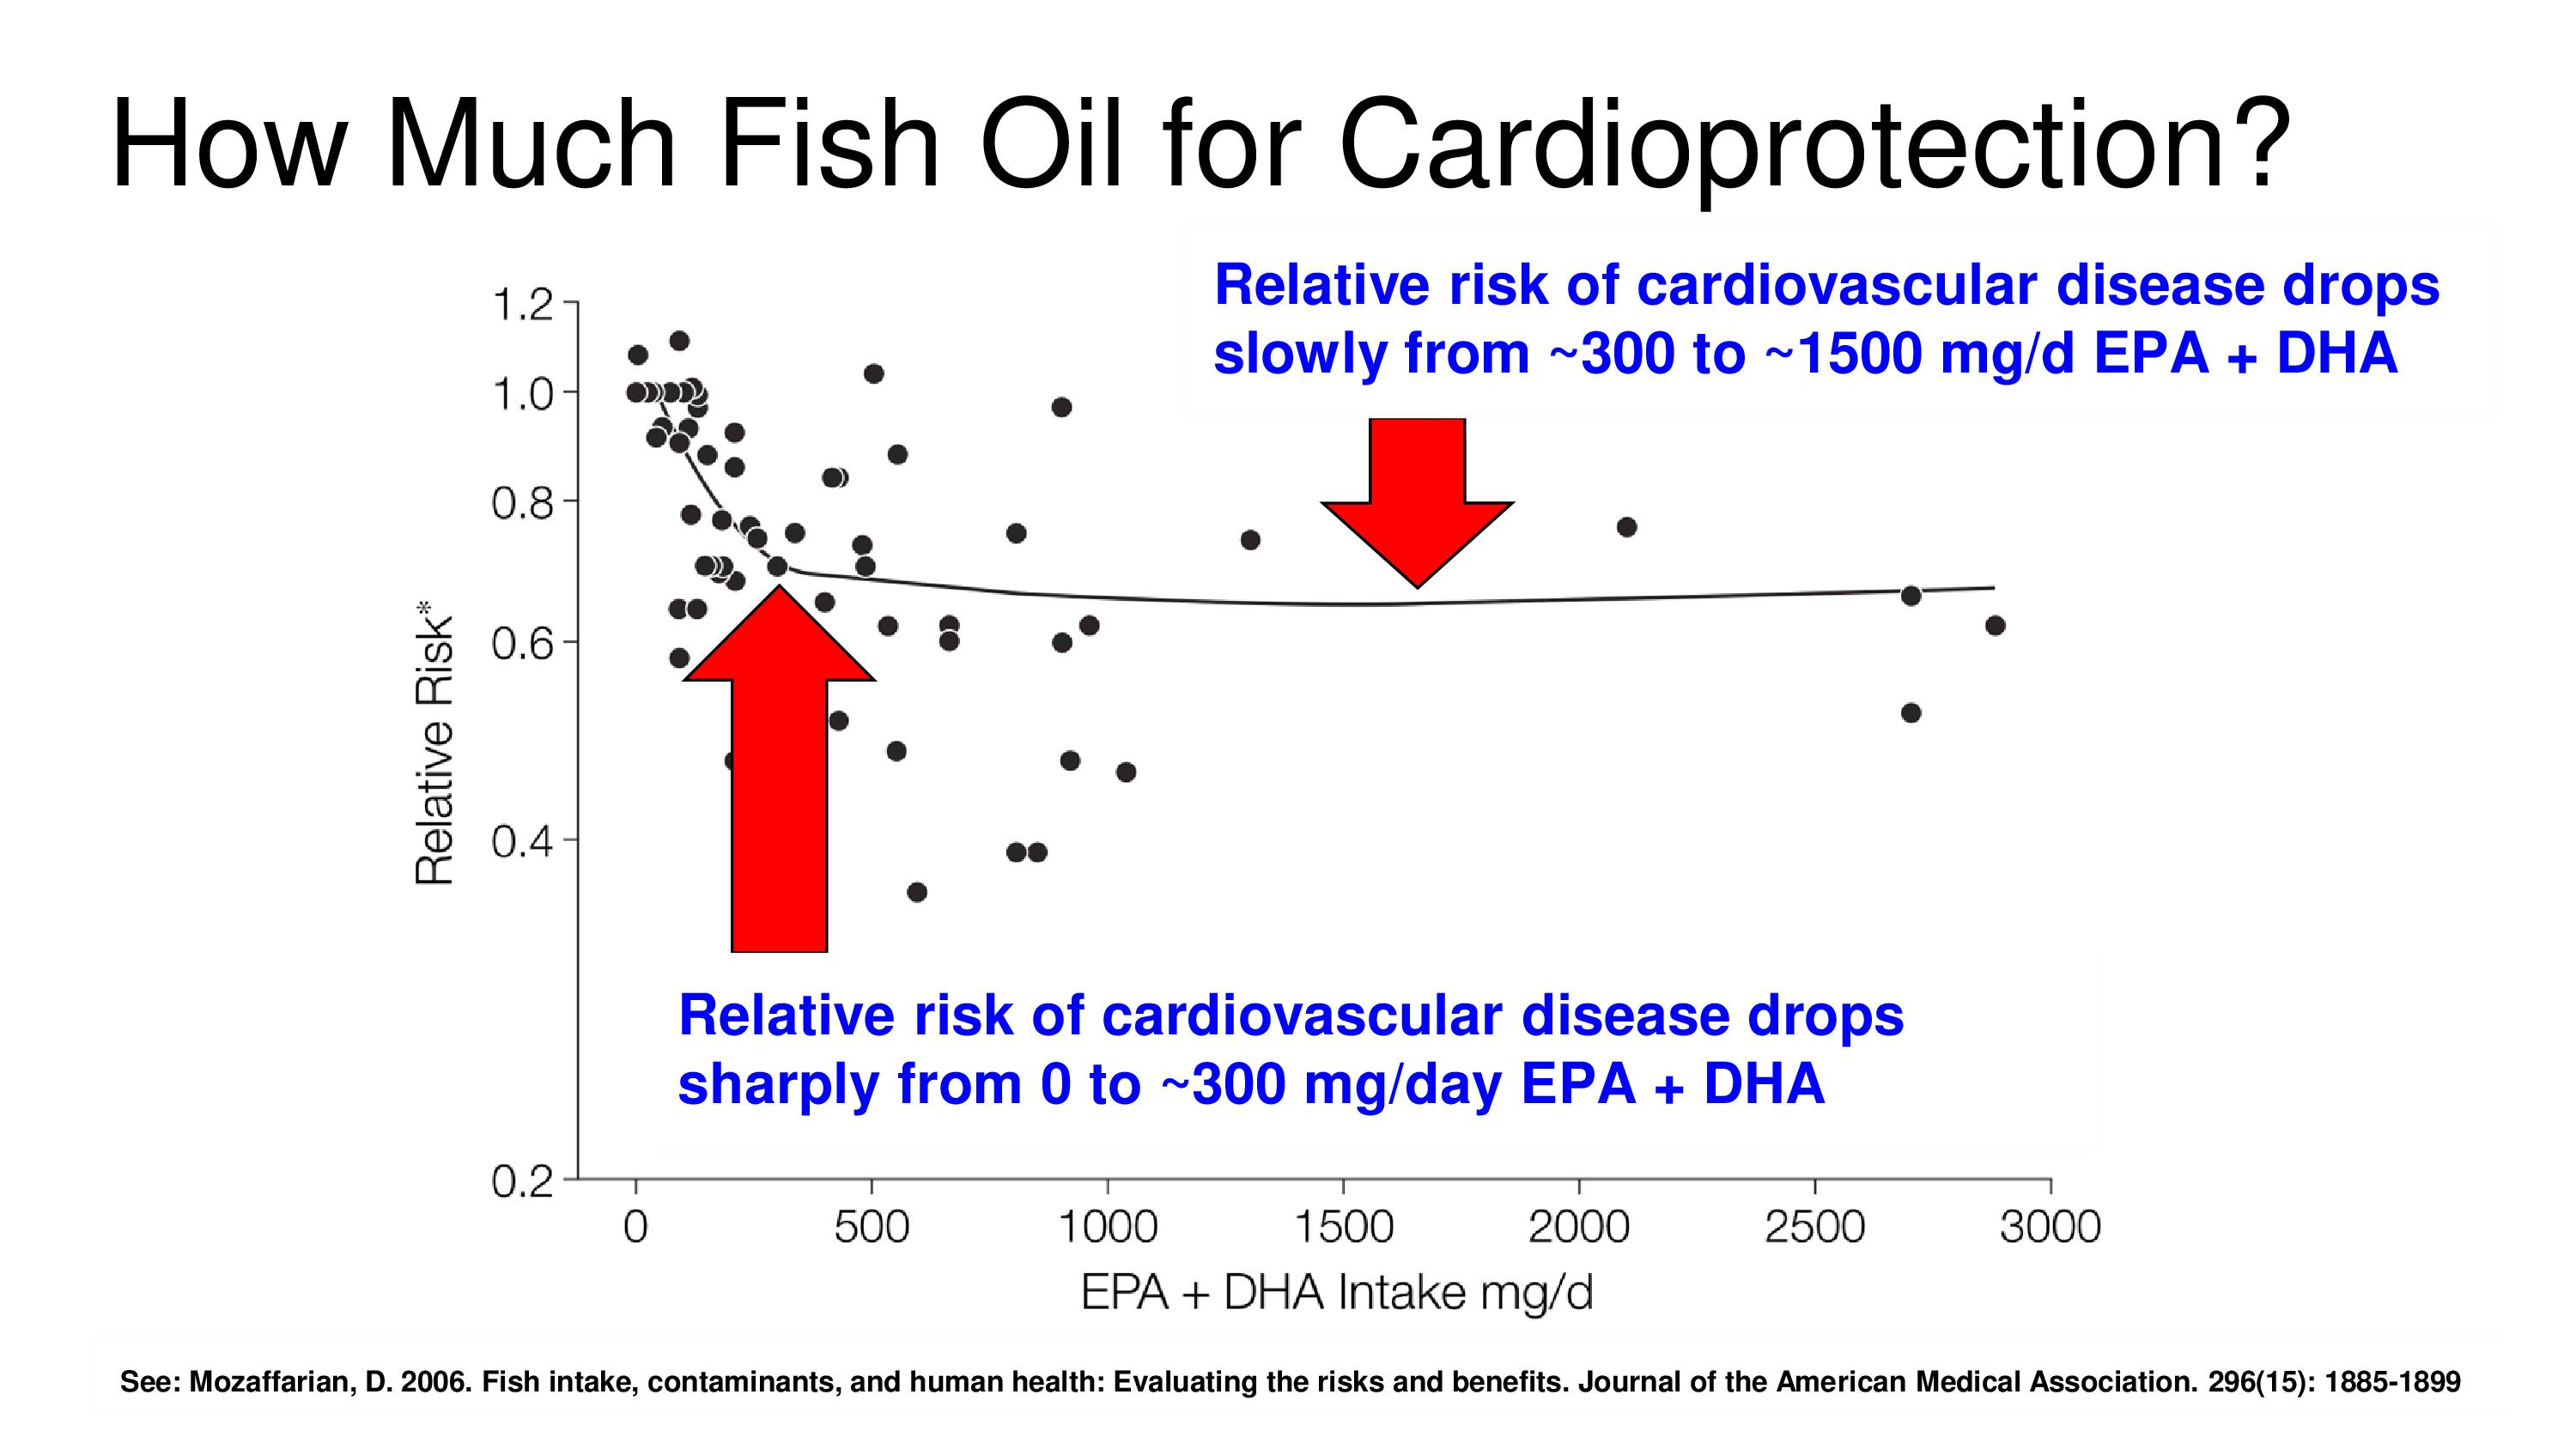 how much fish oil for cardioprotection